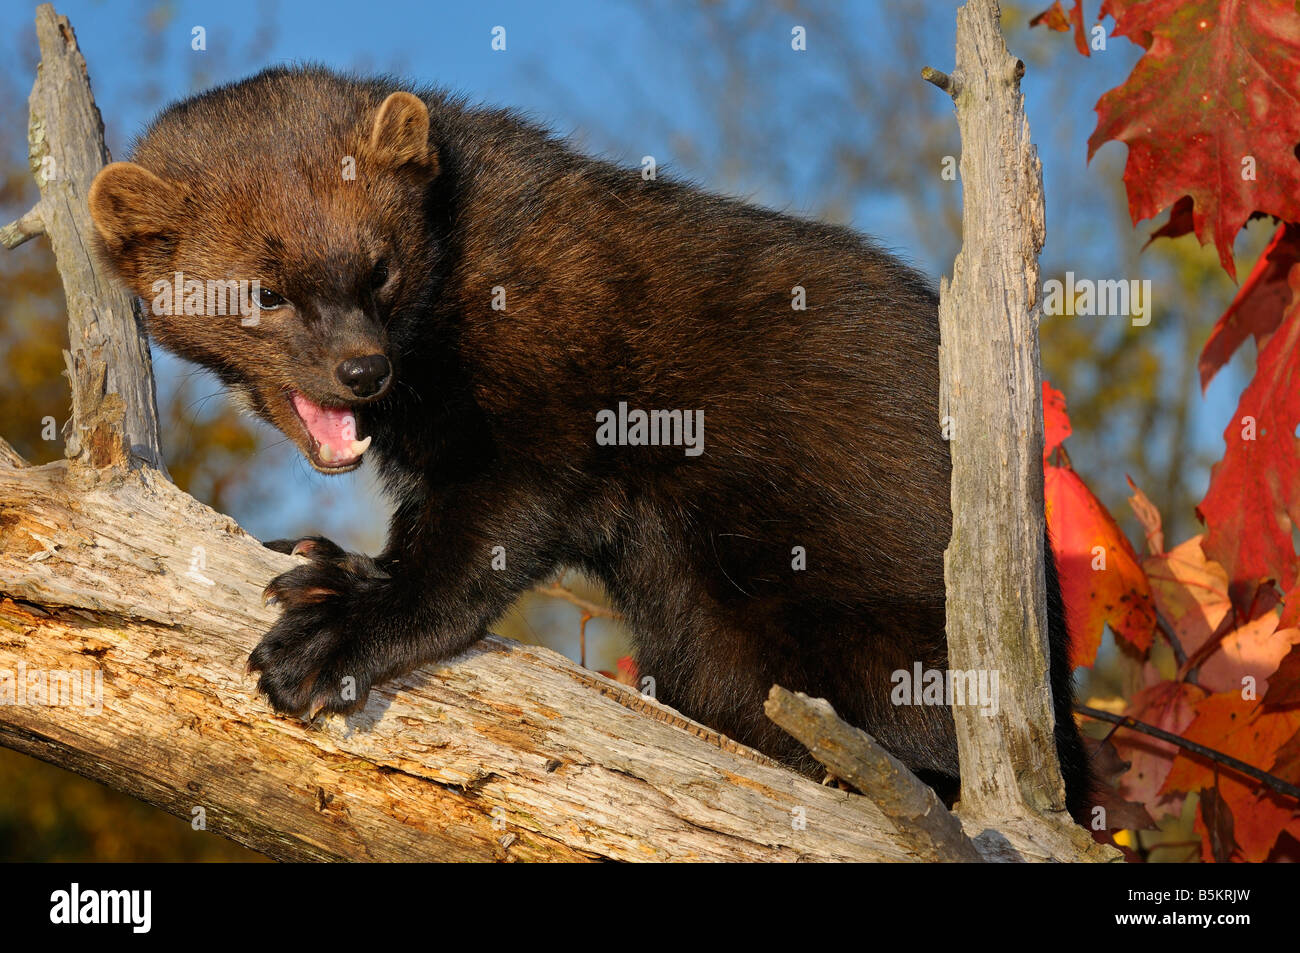 North American Marten Or Fisher Baring Teeth And Claws While Climbing Stock Photo Alamy